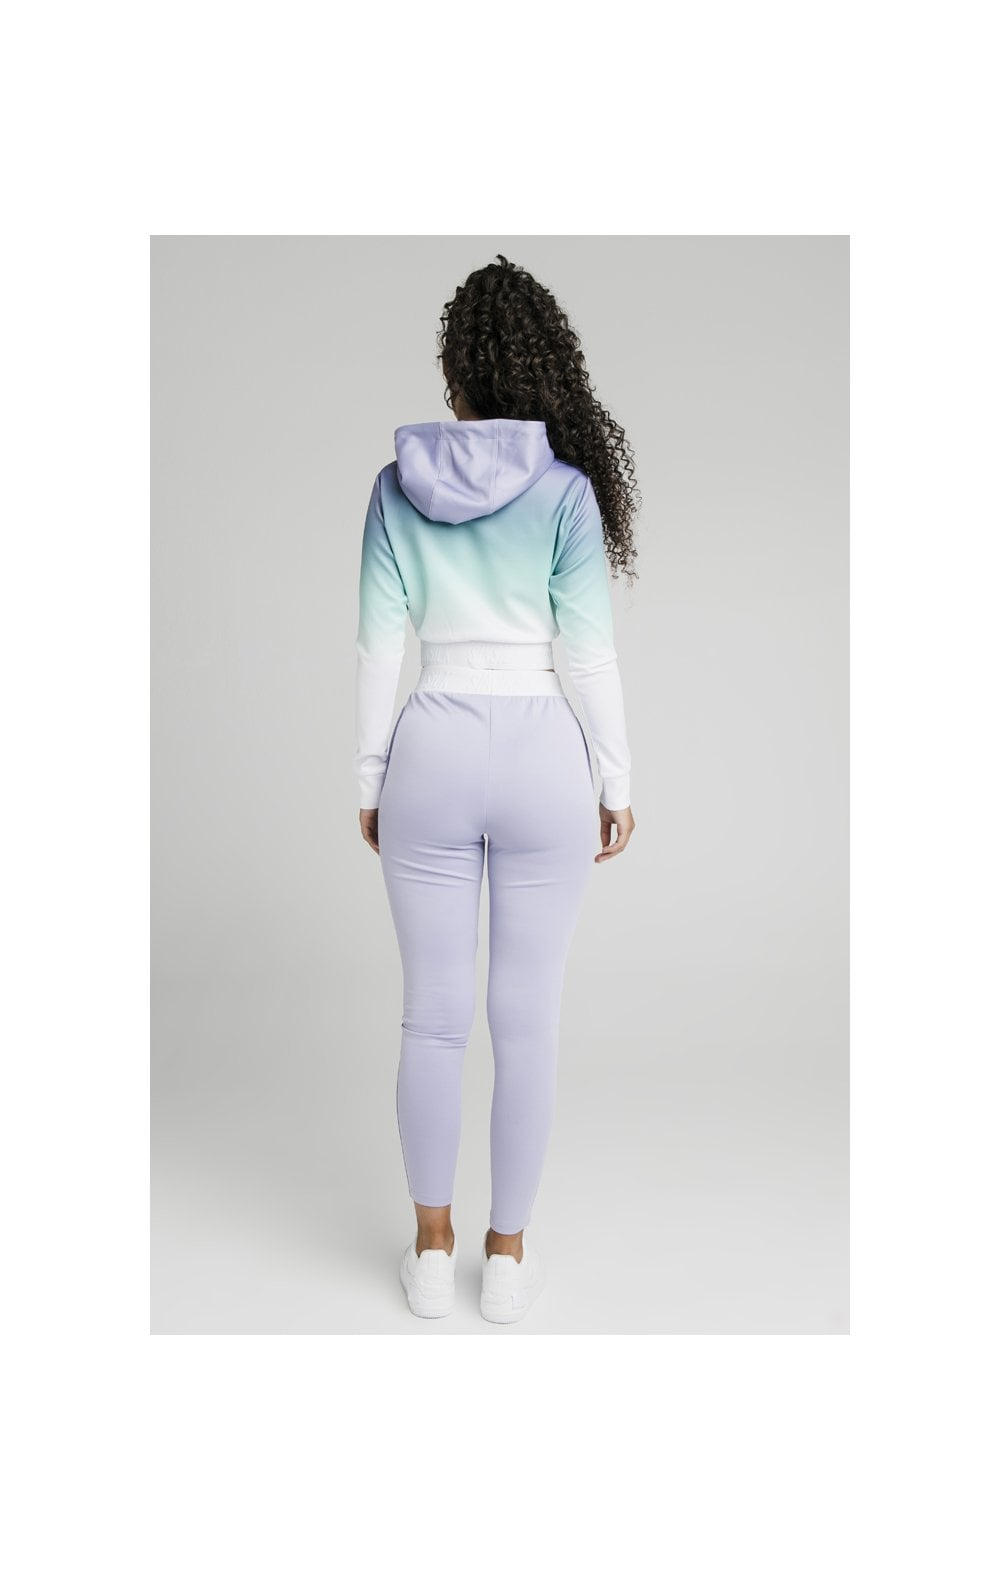 SikSilk Lilac Haze Track Top - Lilac, Turquoise & White (5)